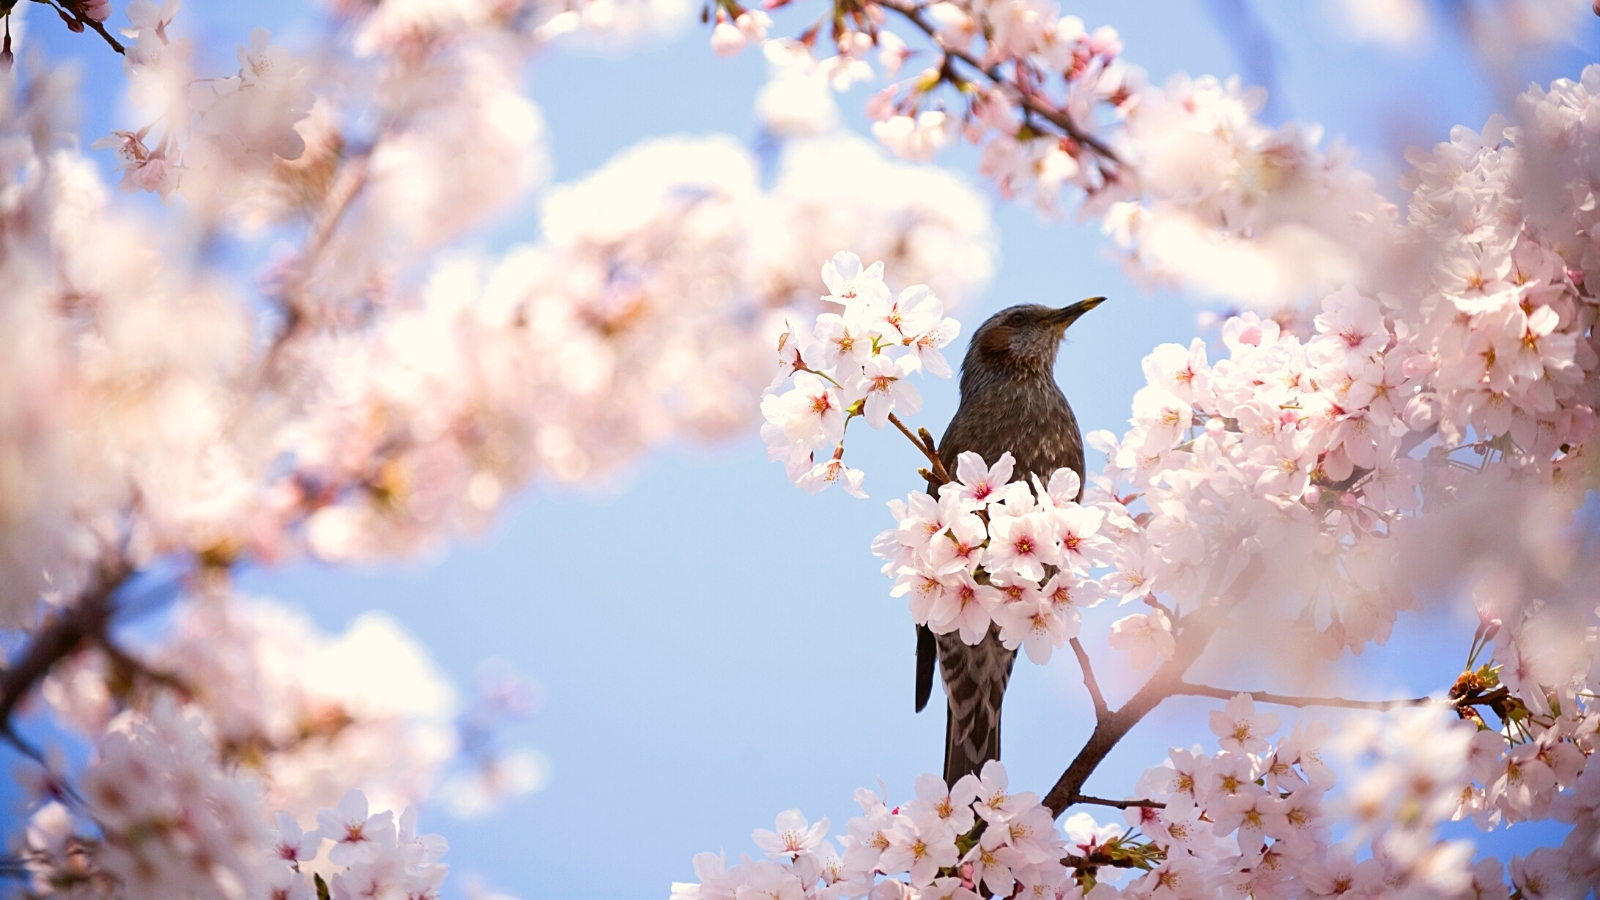 A photo of a small brown bird perched in the branches of a blossoming cherry tree against a pale blue sky.